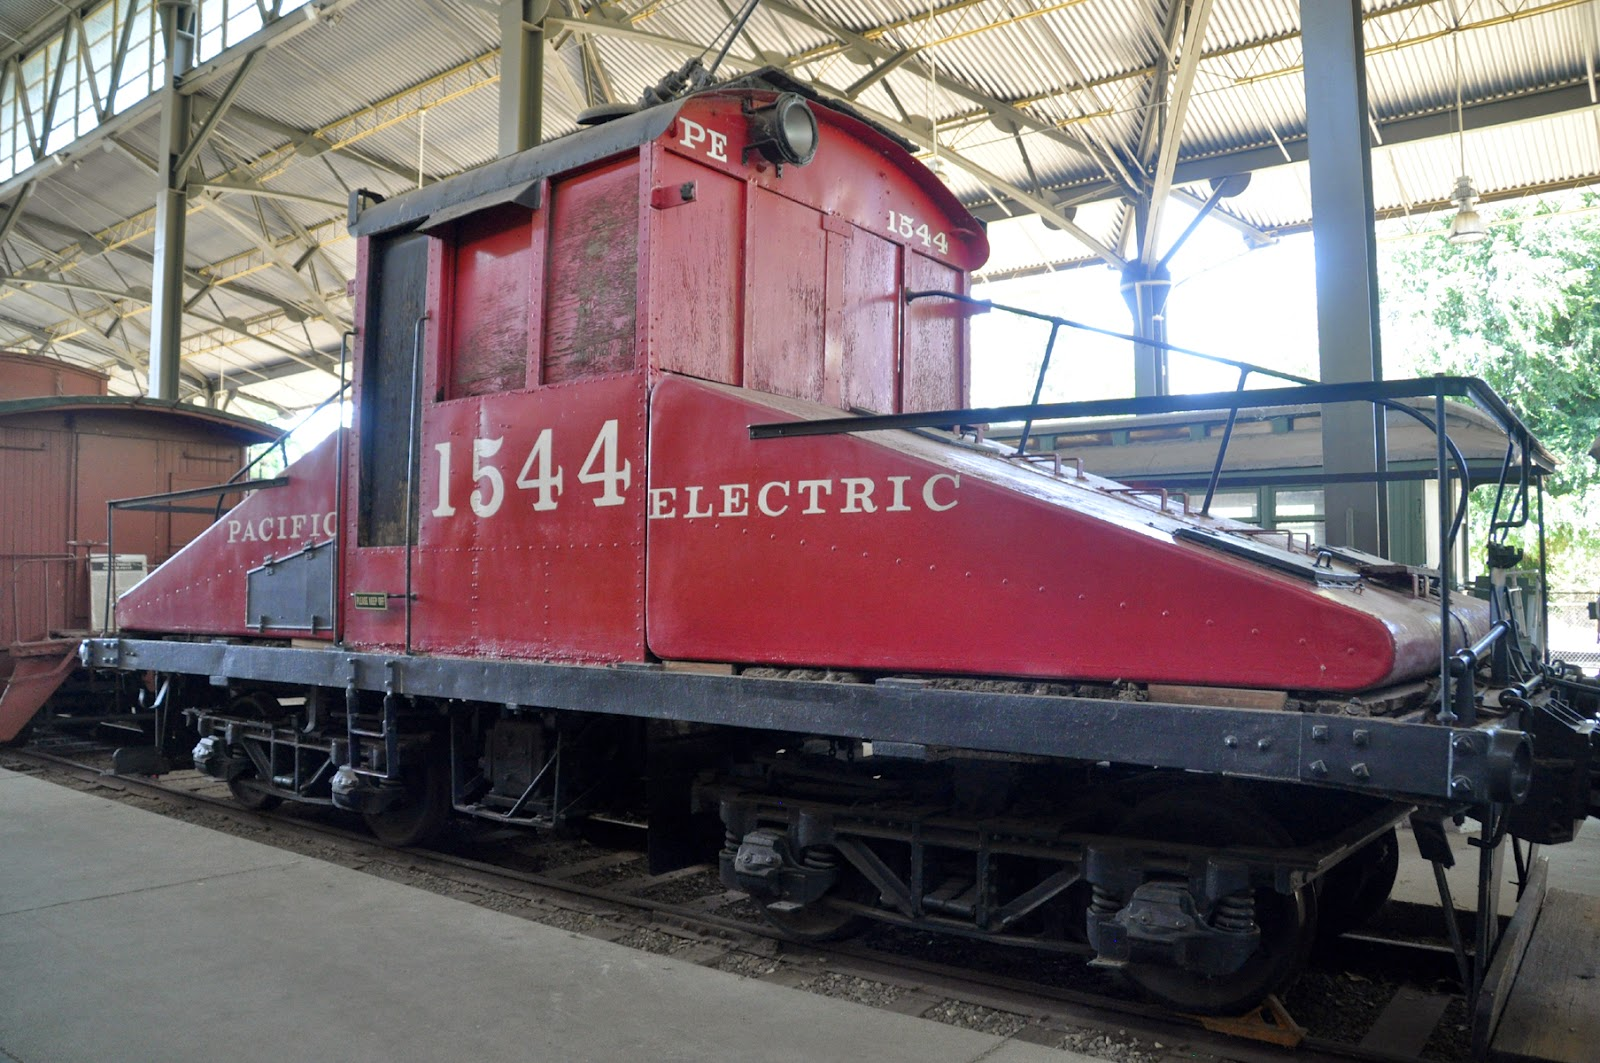 4 Motor Electric Train Engine Used To Build The La Subway